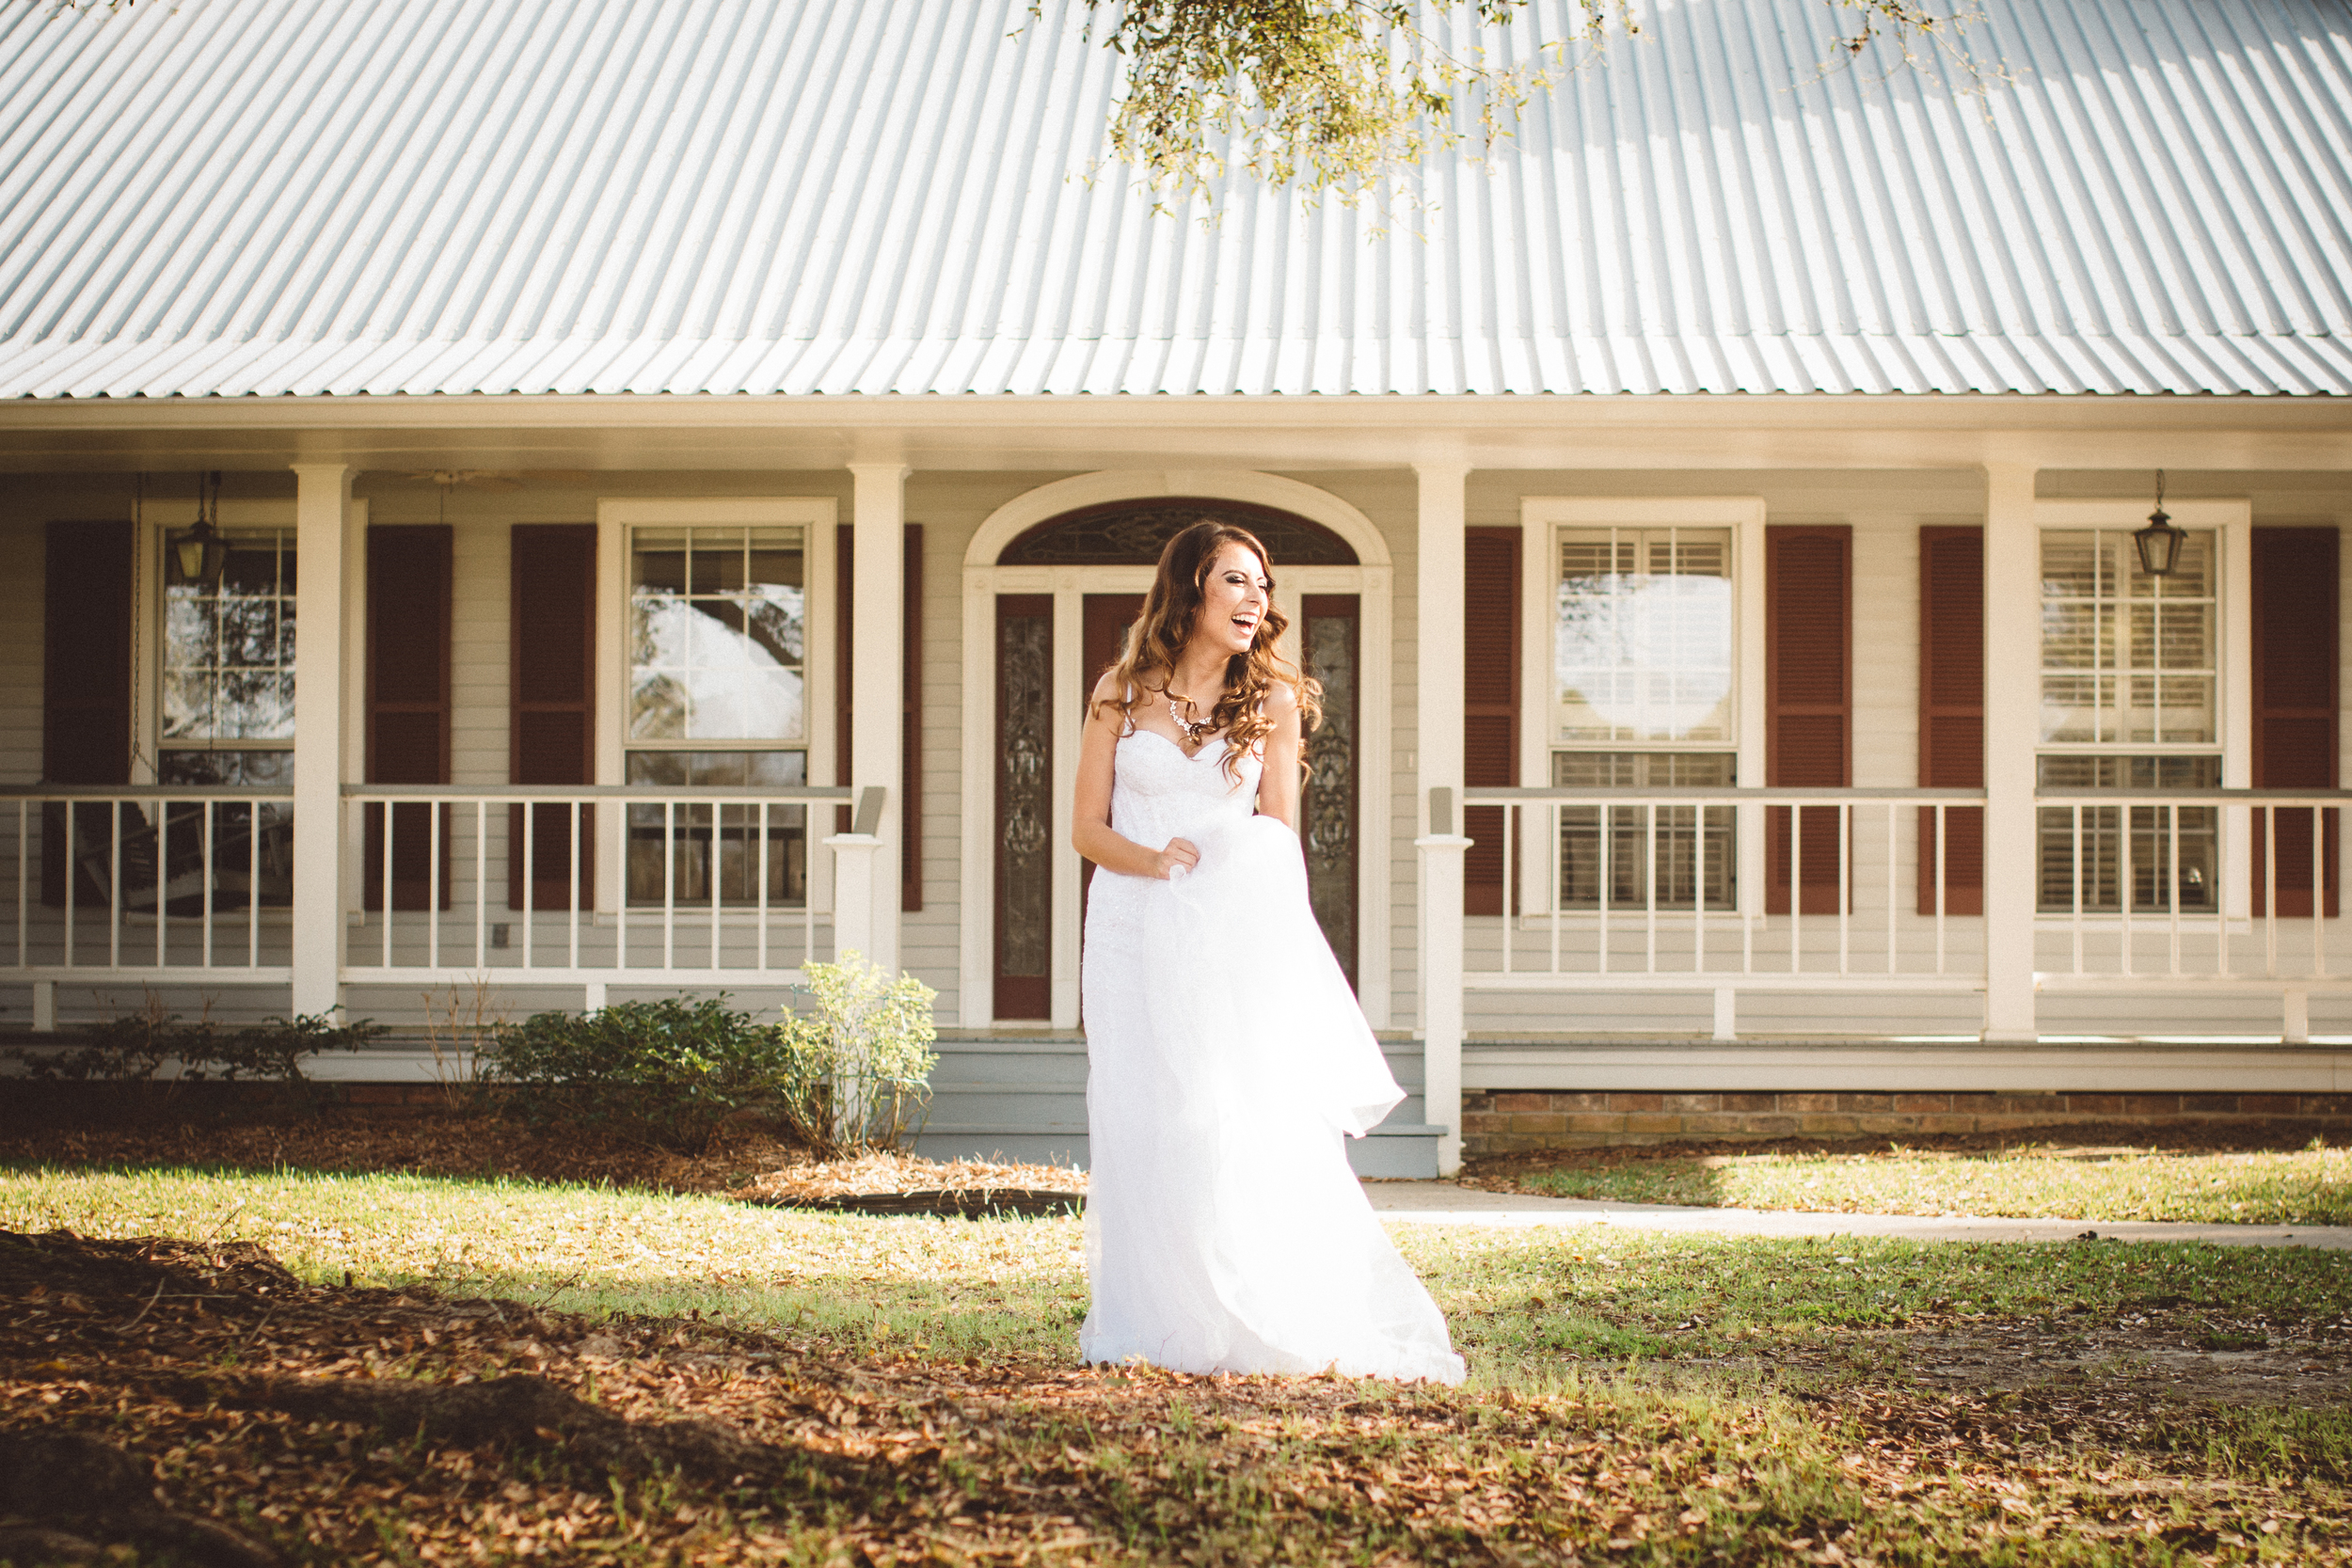 M Bridals High Res (4 of 63).jpg